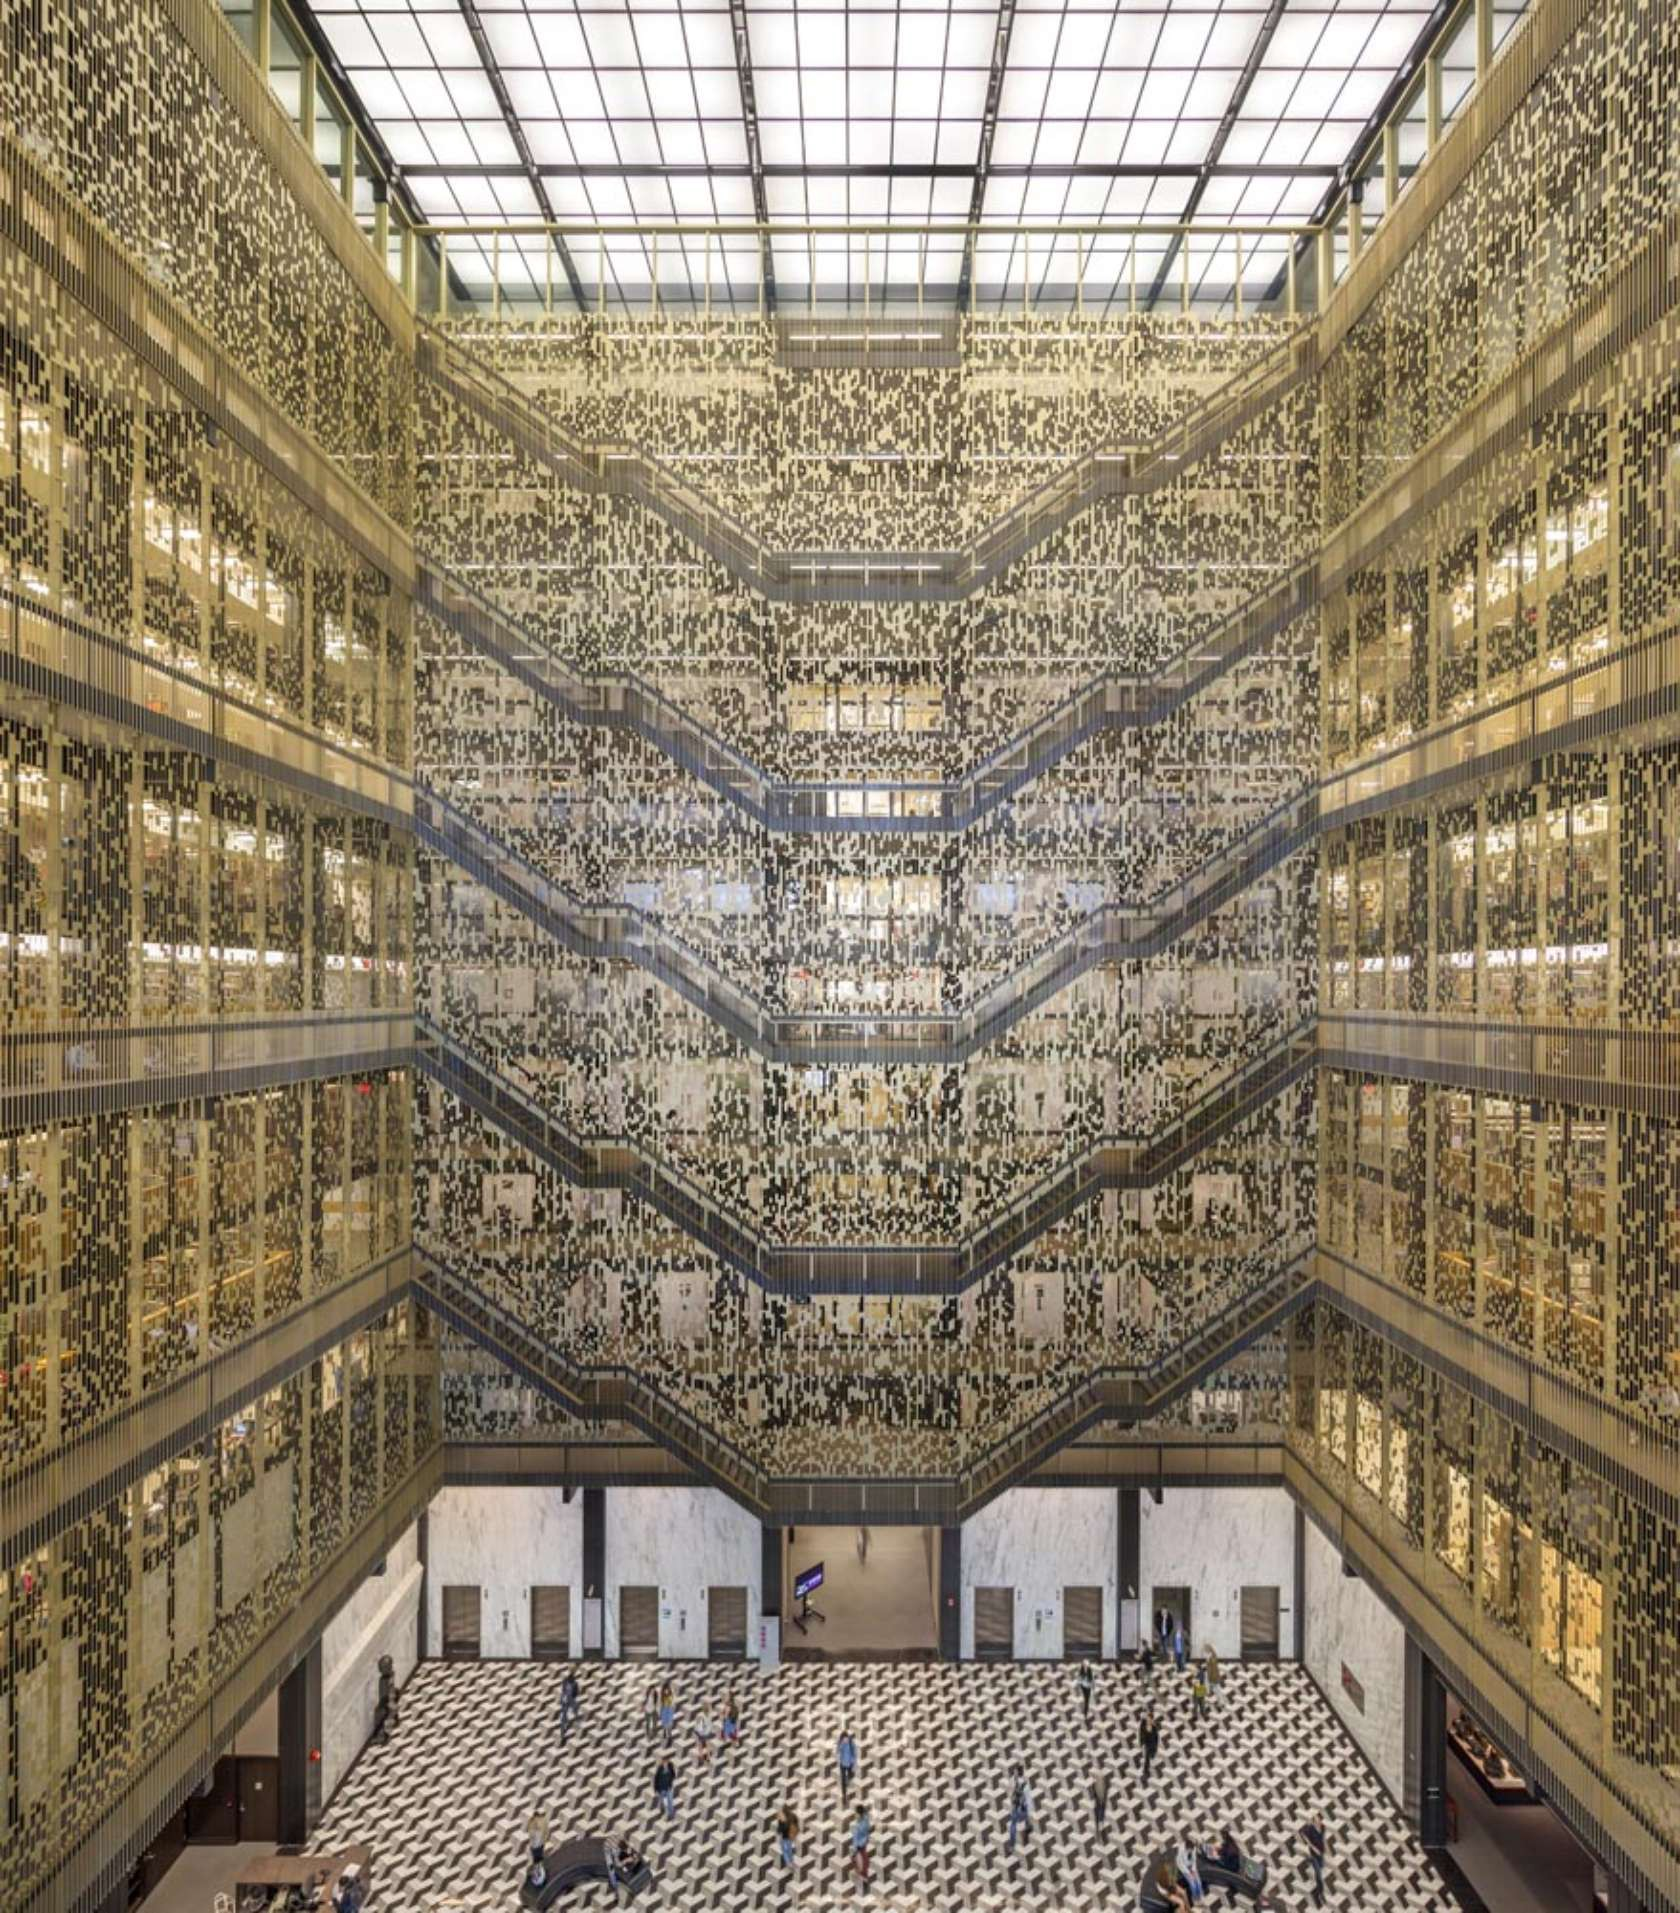 Local Writer Just Wants Some Space in Bobst - NYU Local